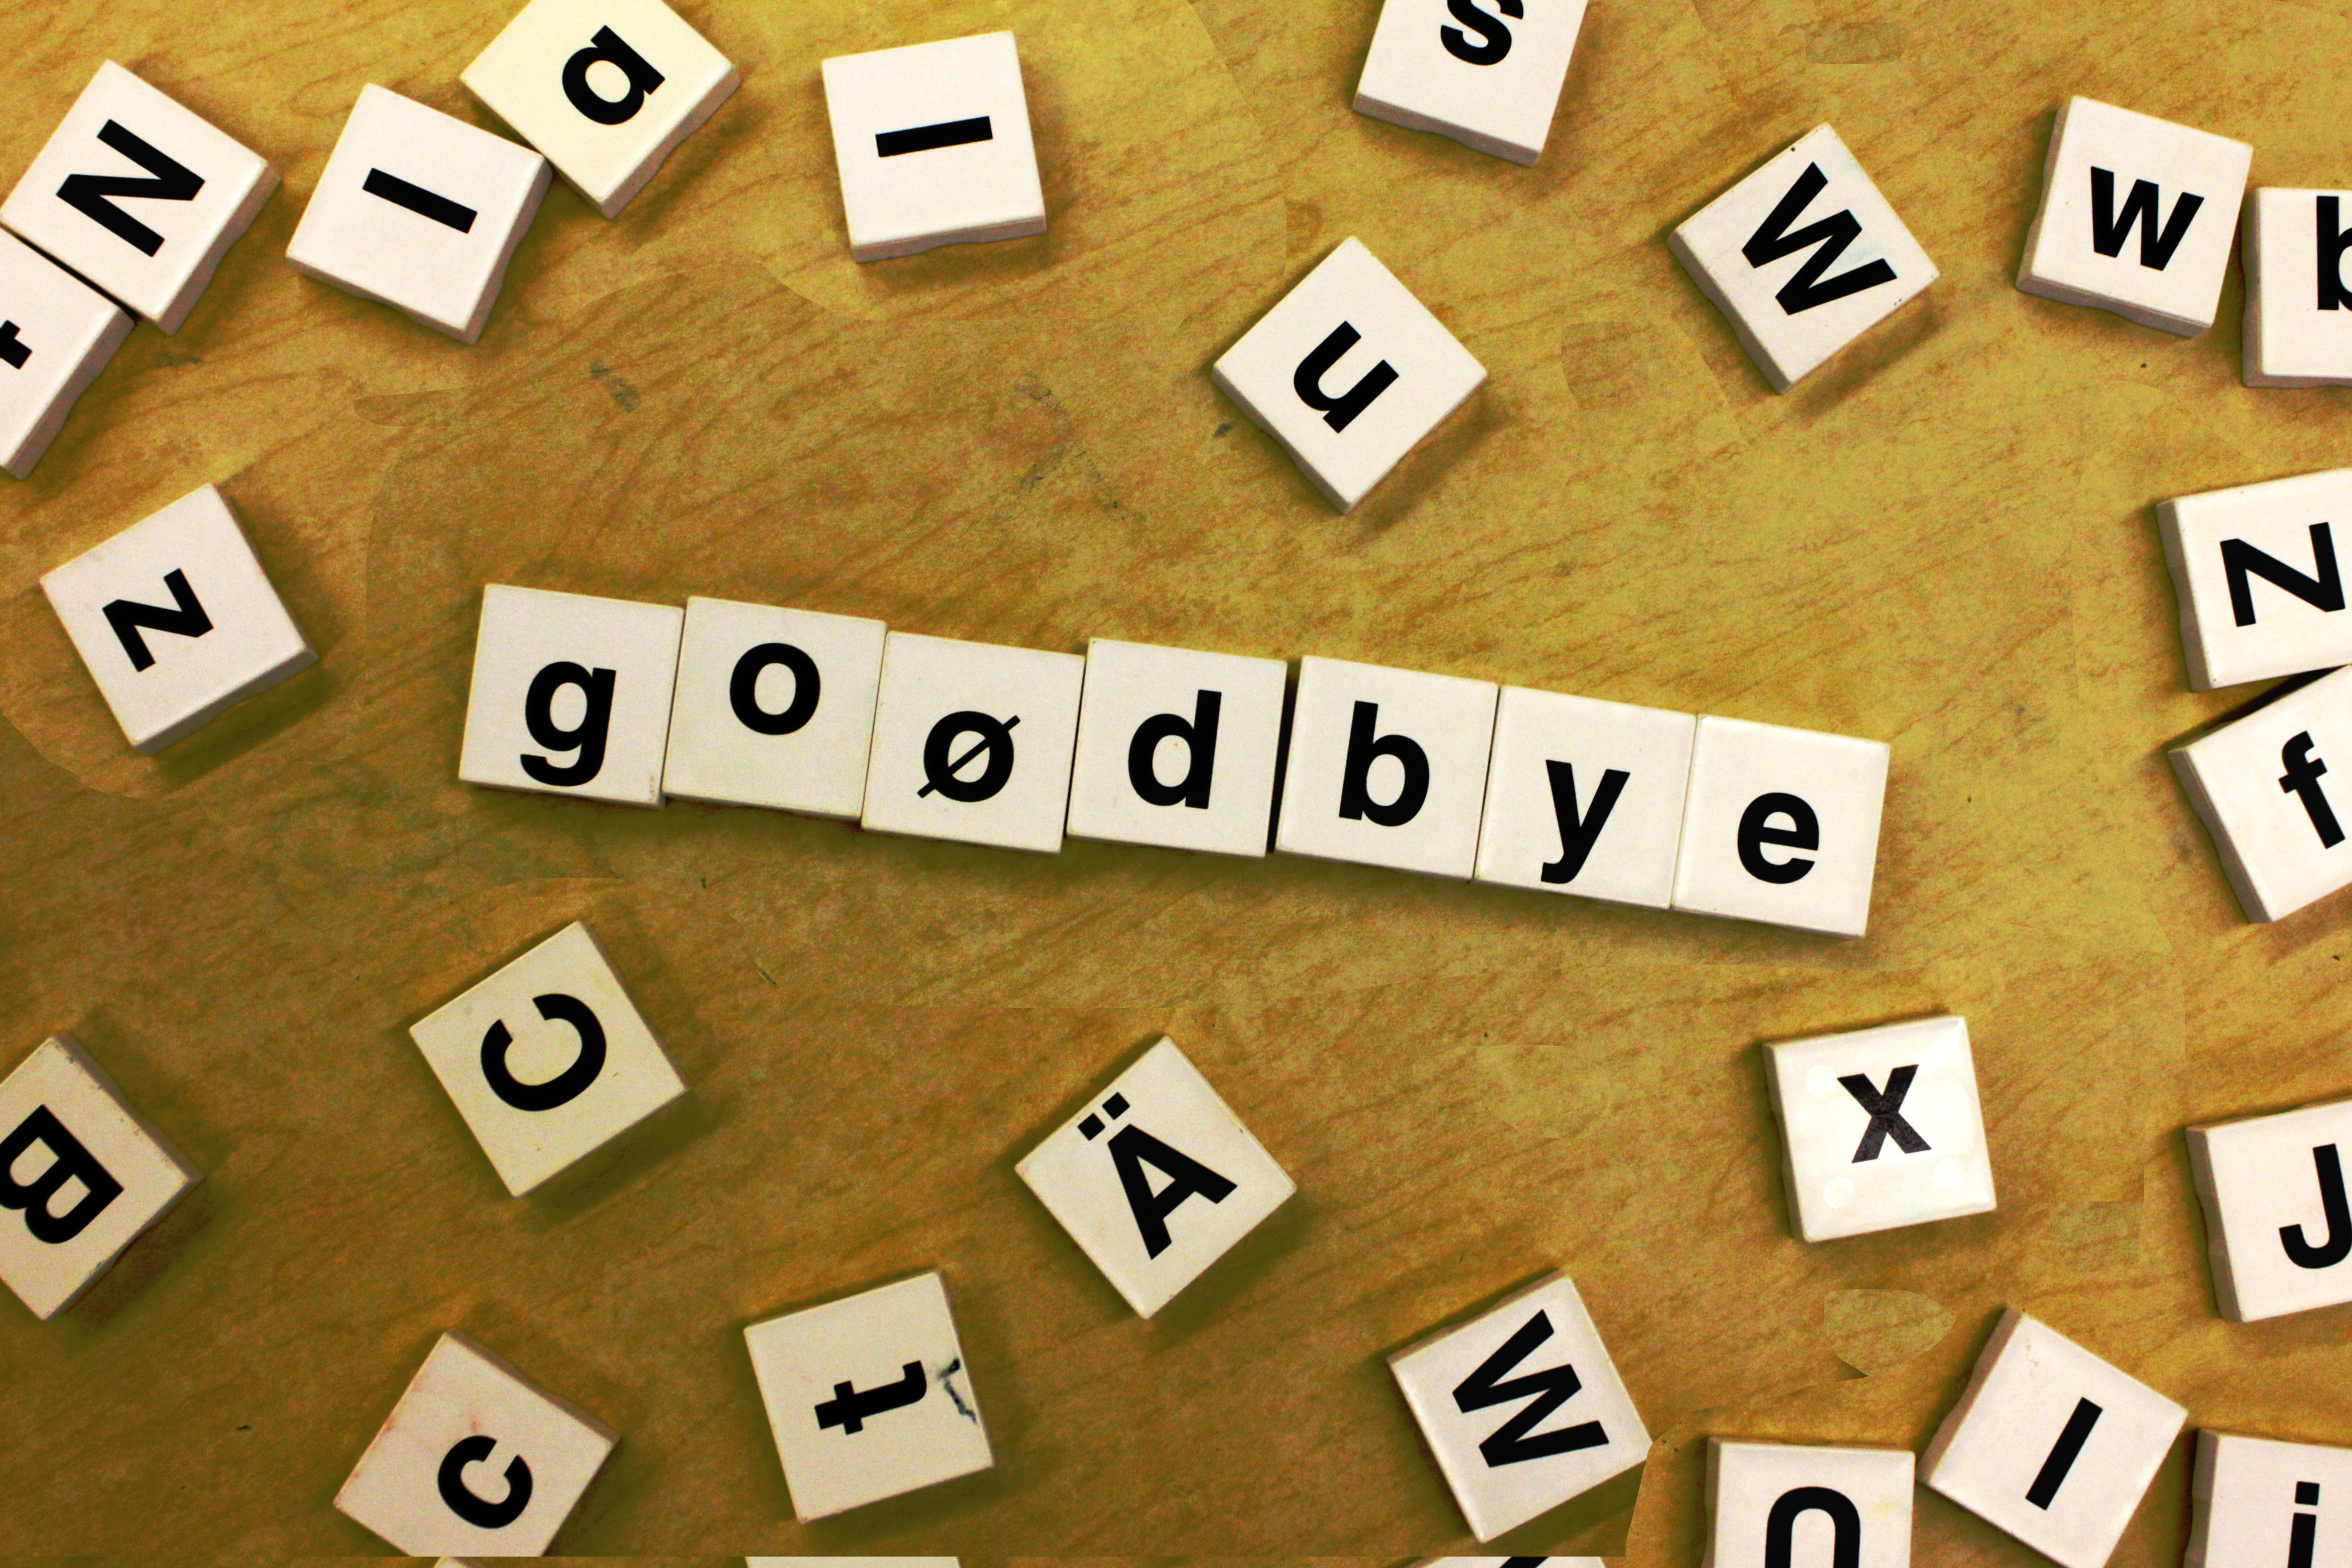 4 November 2020 English Goodbye blocks on the floor to represent social media when someone has died.